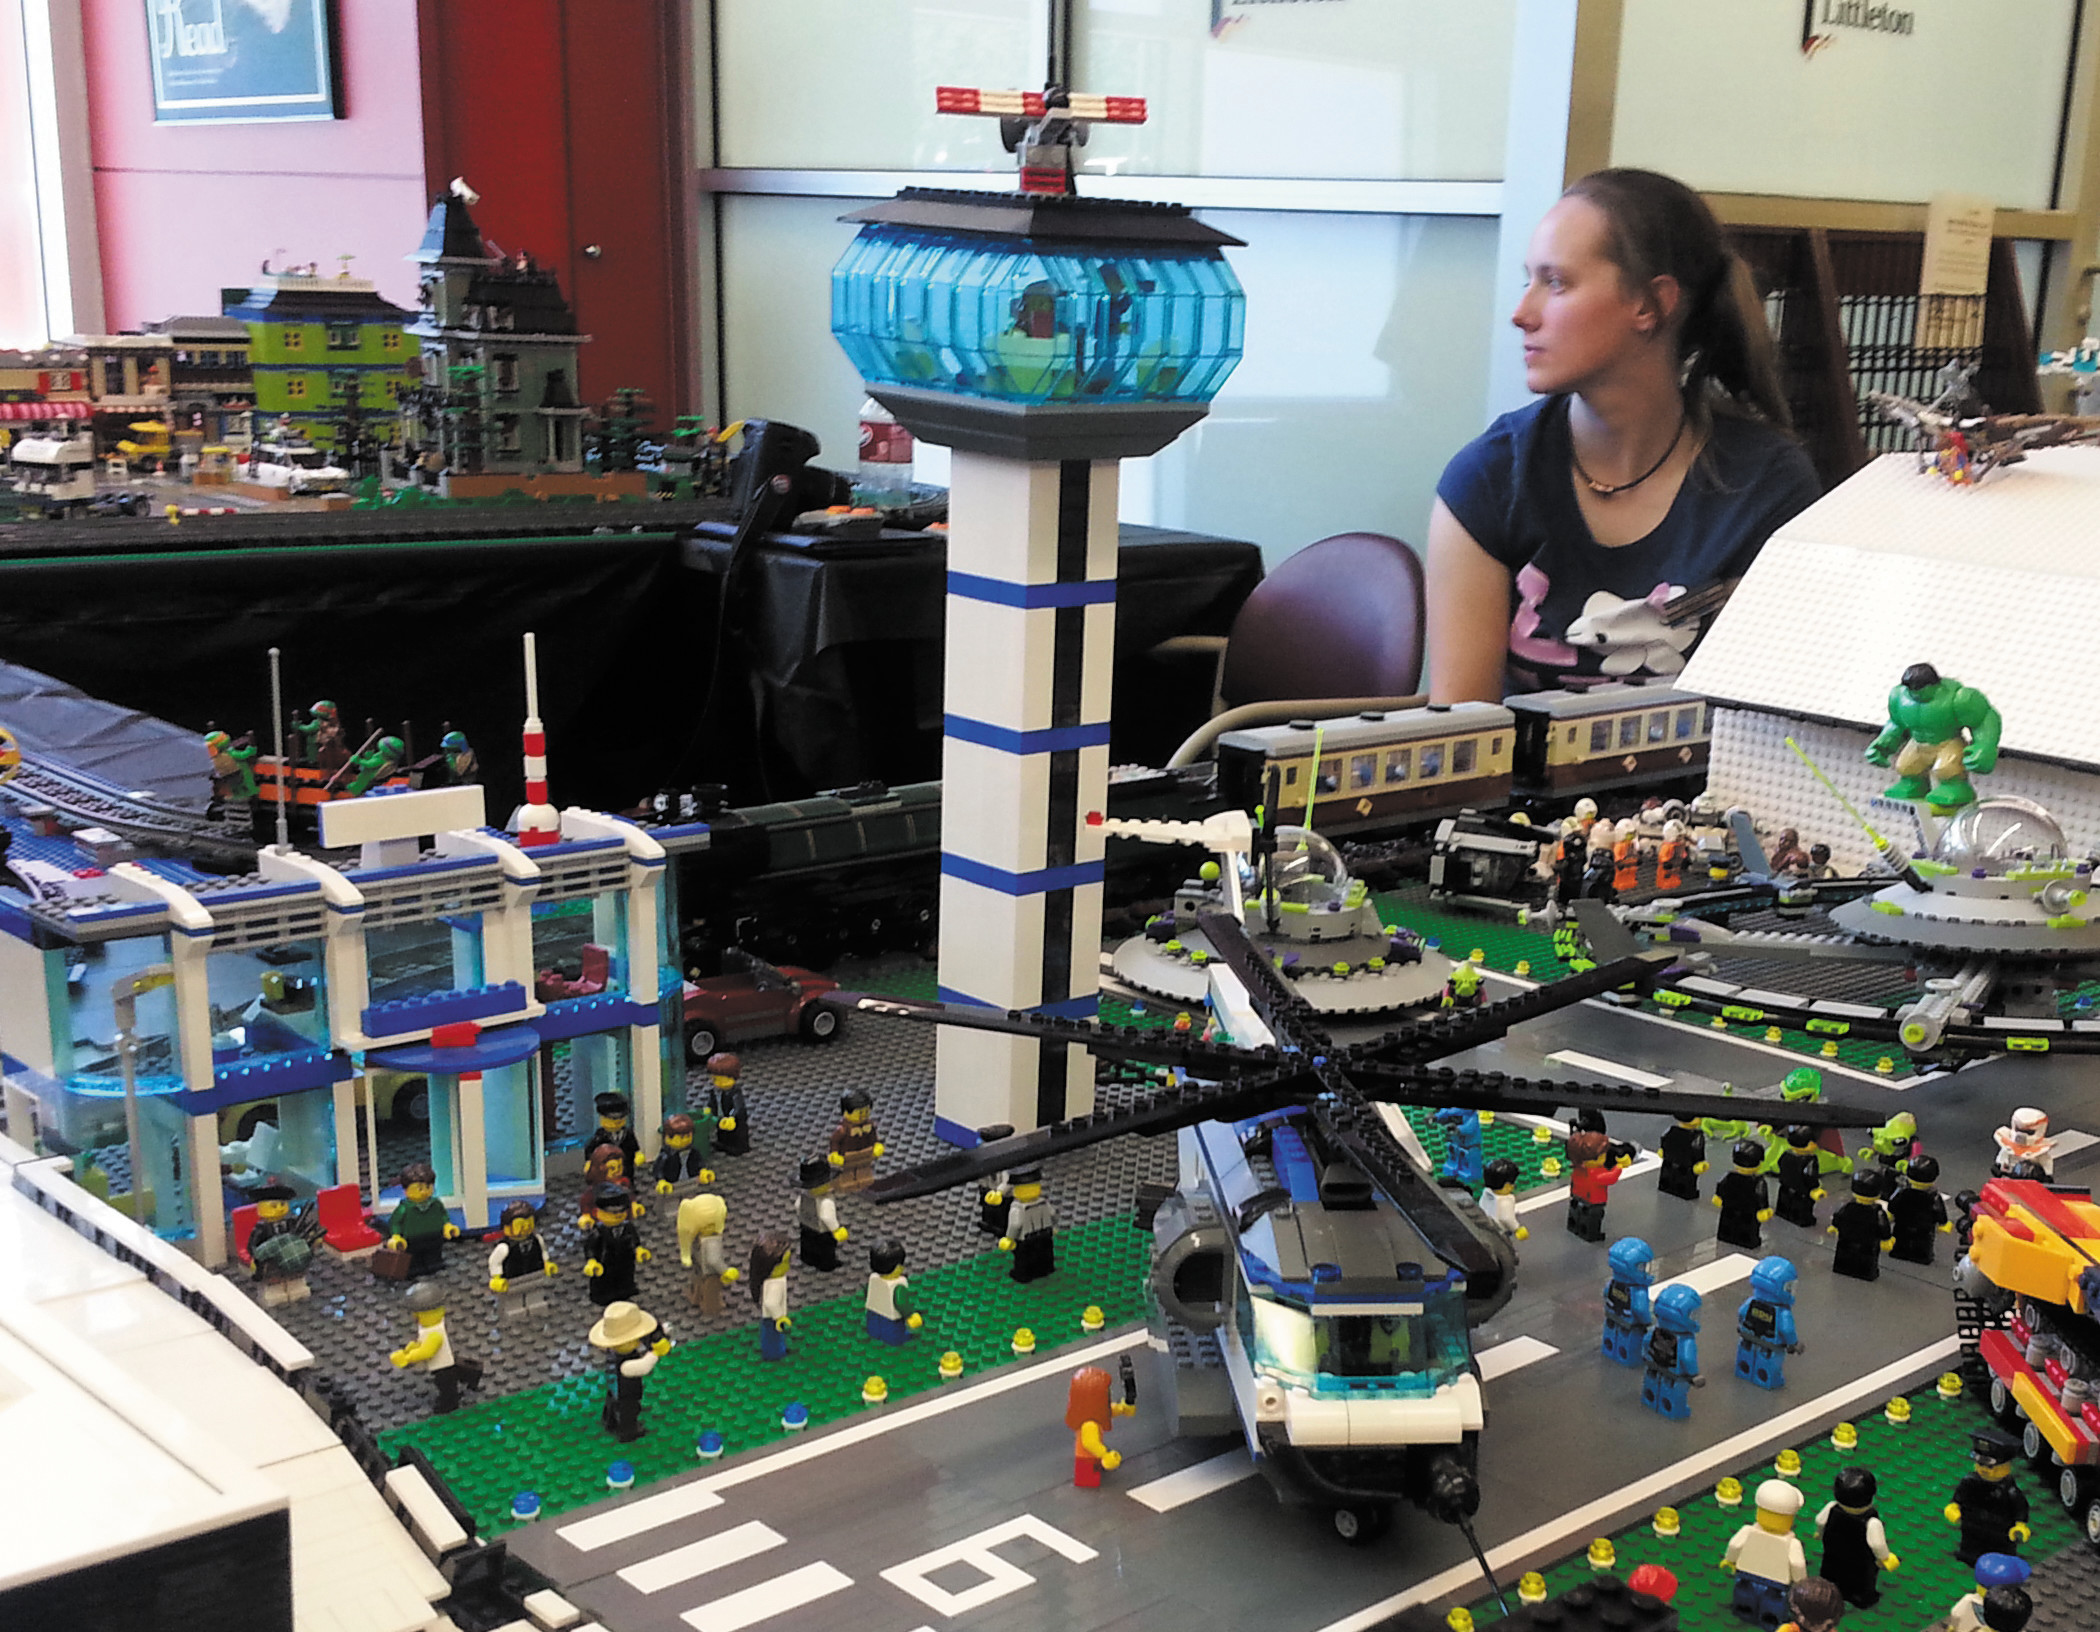 Abby Davis sits surrounded by the Lego land she helped create through her work with the Colorado Lego Users Group.